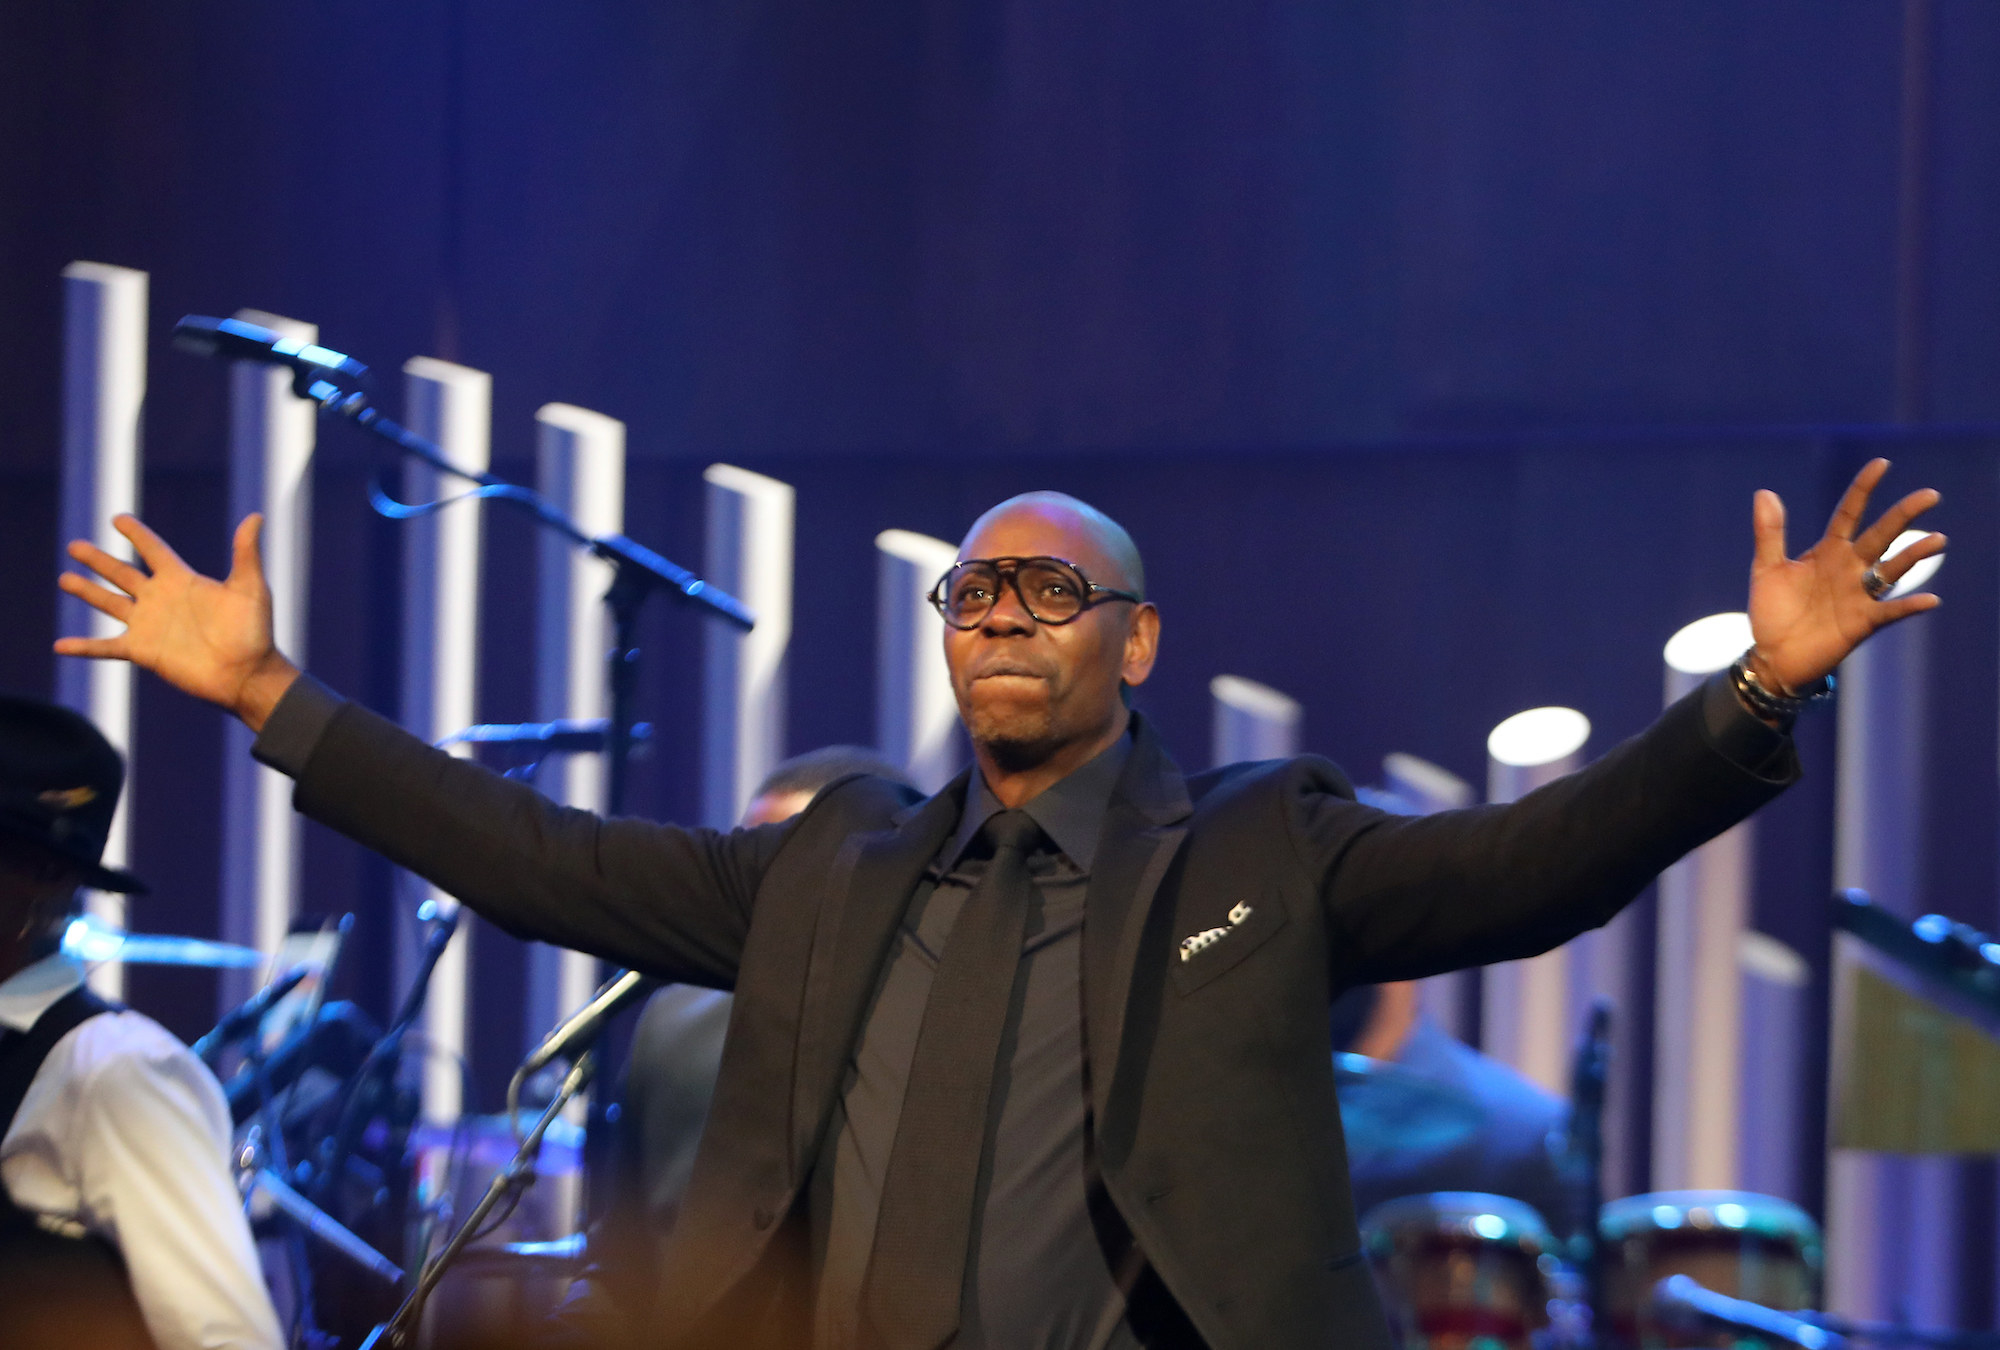 Dave Chappelle raises his arms during the Mark Twain award show at the Kennedy Center